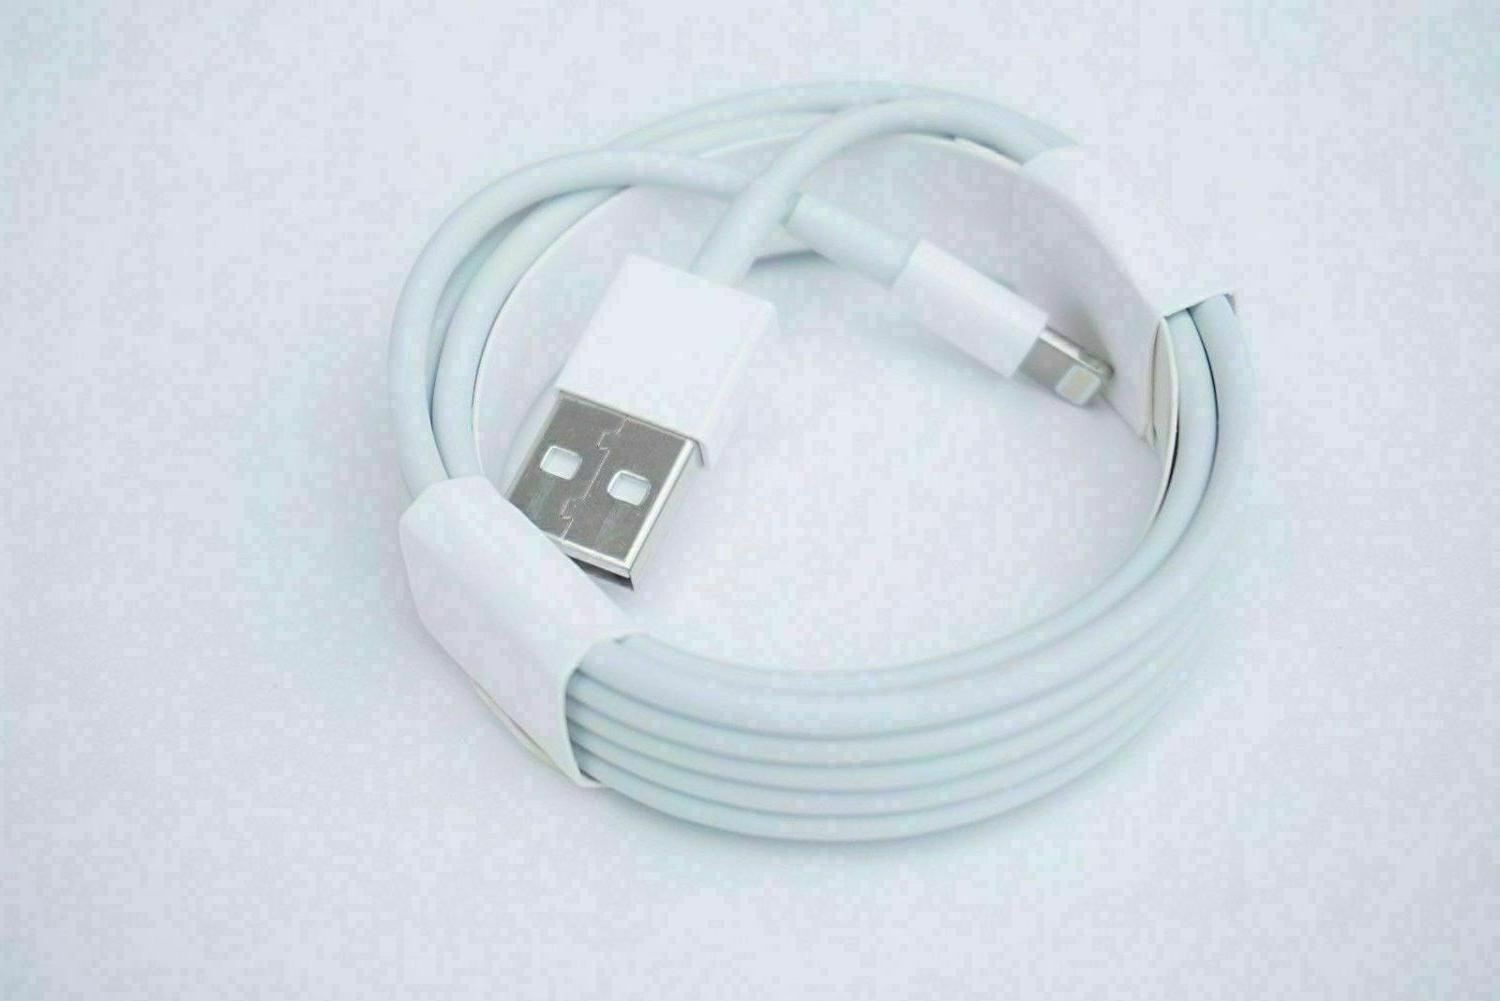 New Original Apple Lightning Cable USB Cord OEM